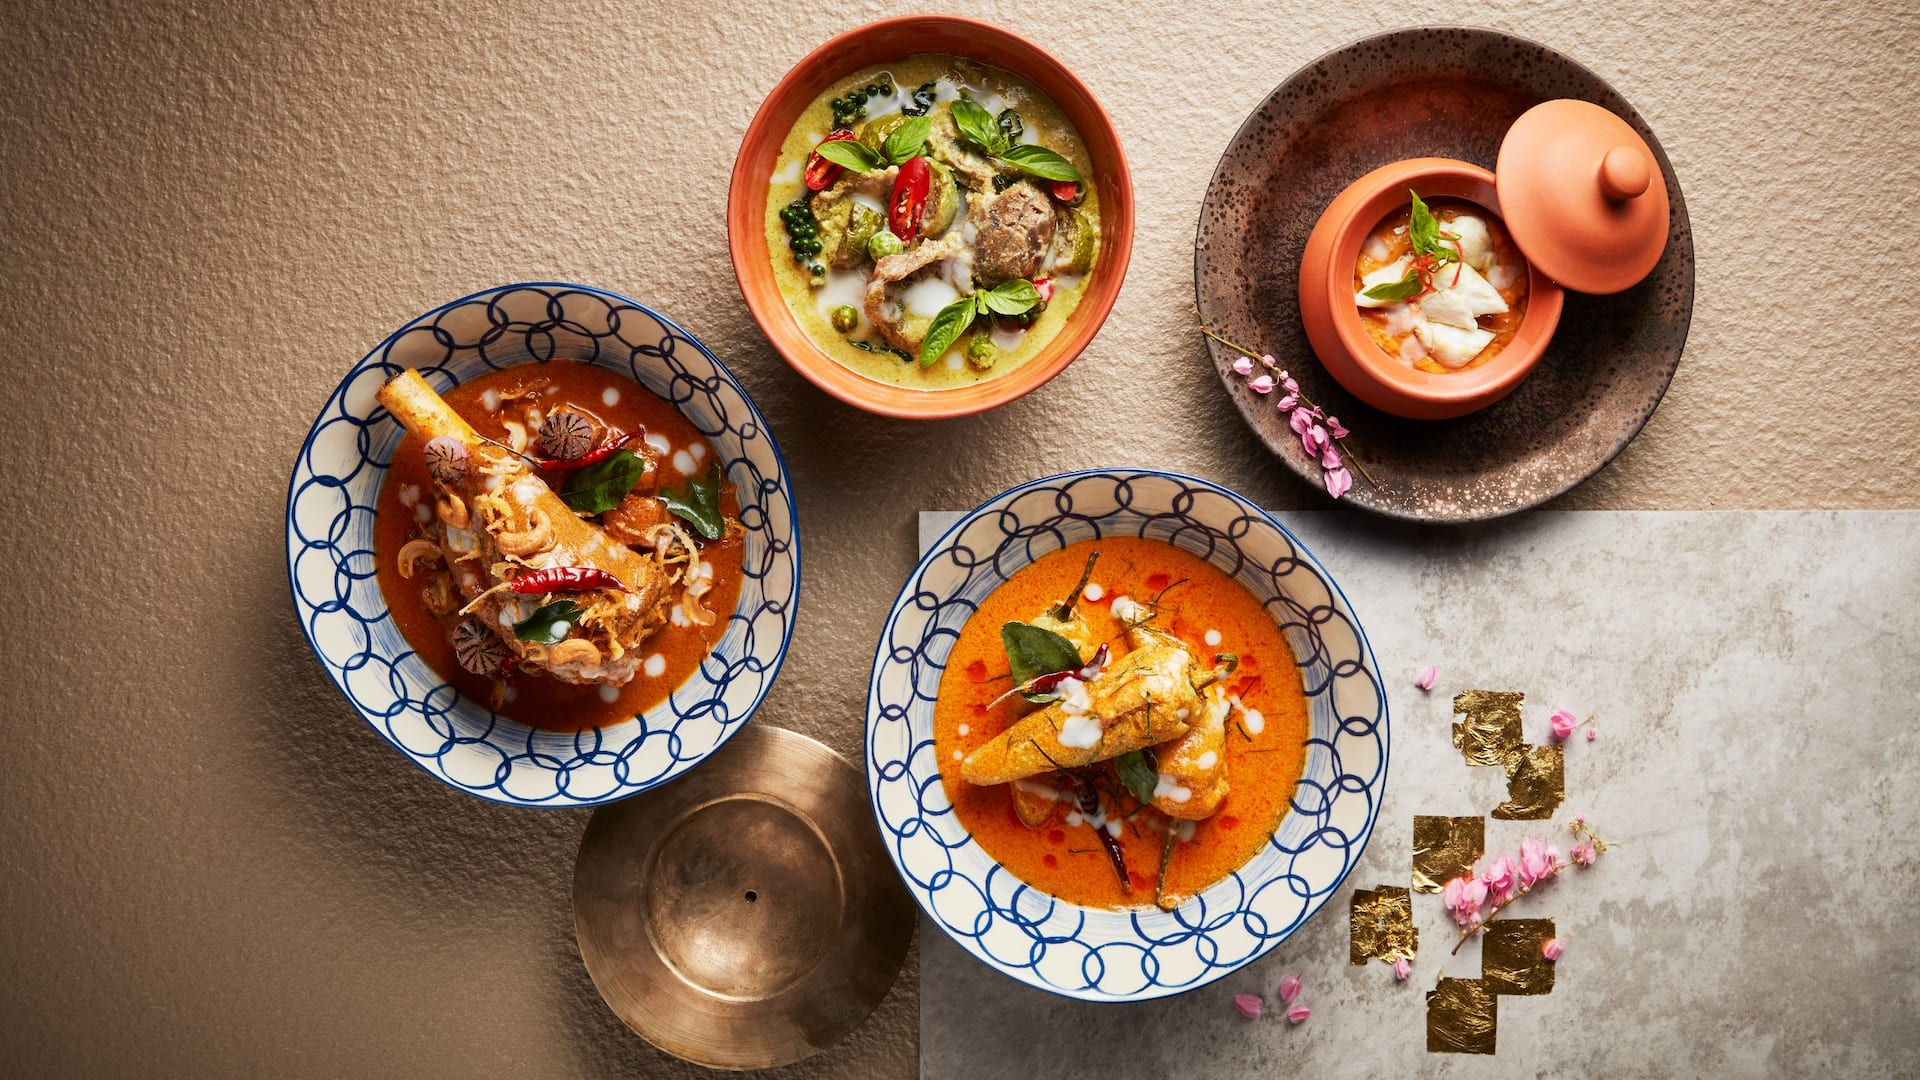 Makret Cafe by Khao - a Michelin-Starred Dining Experience in partnership with Khao